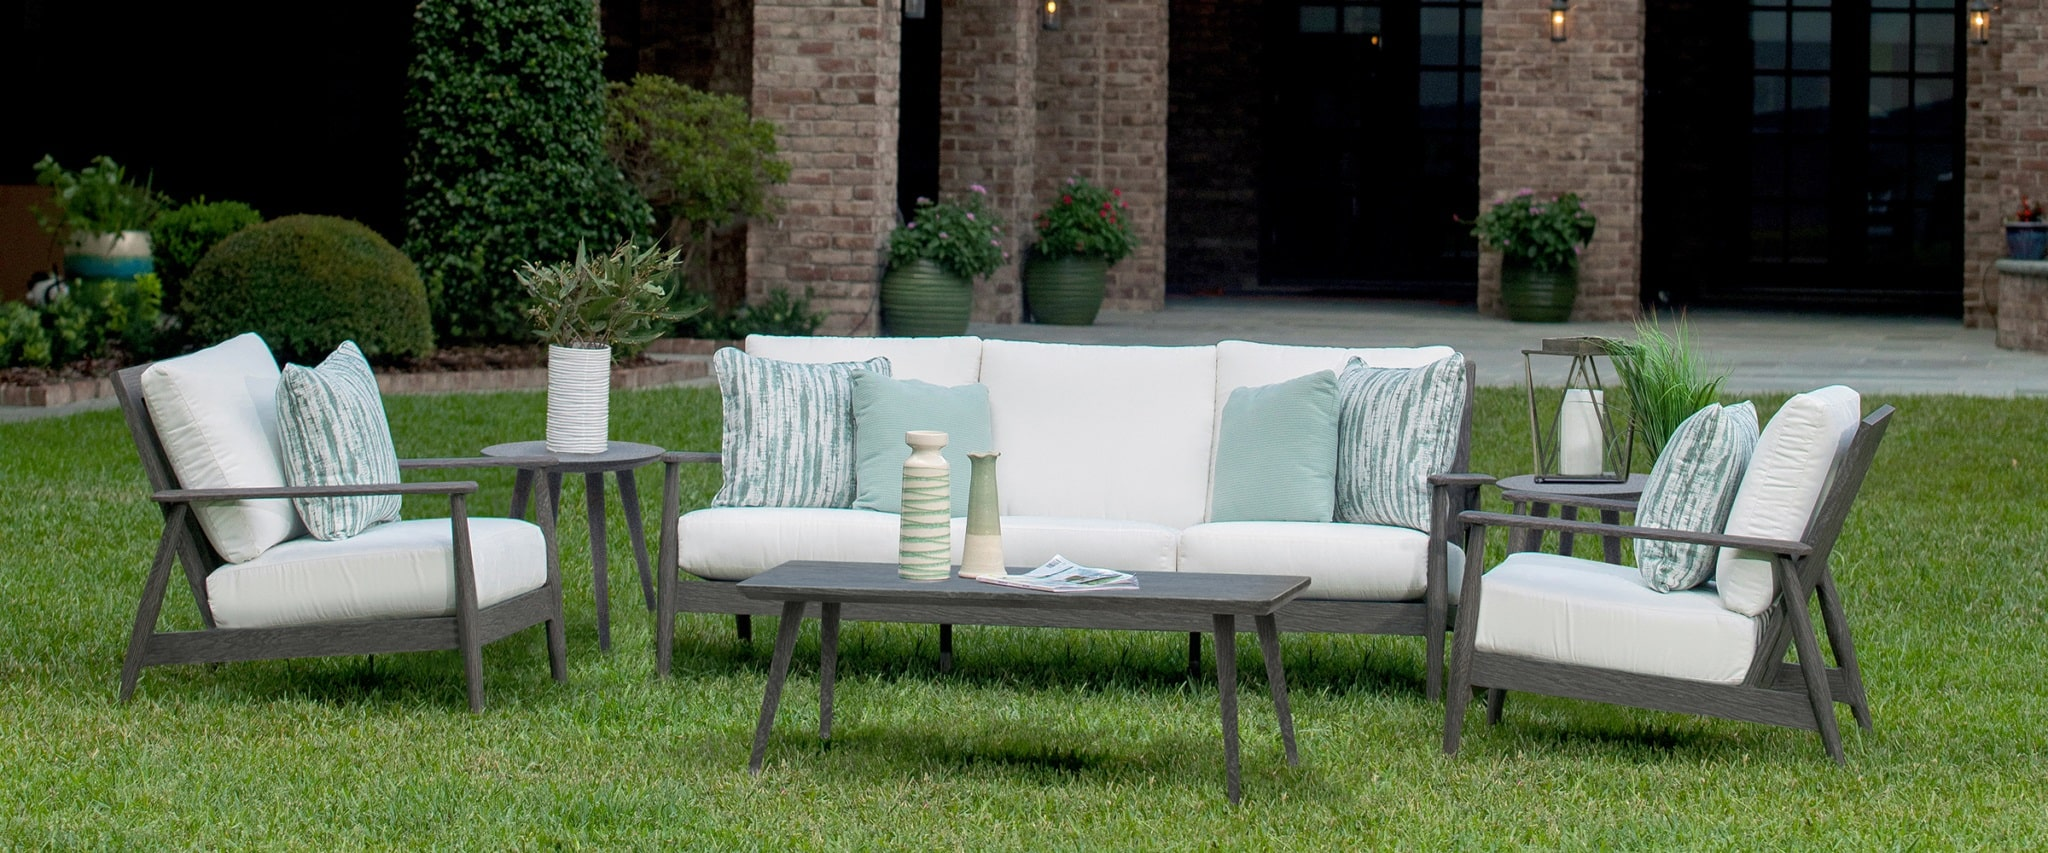 Ebel's Augusta outdoor collection